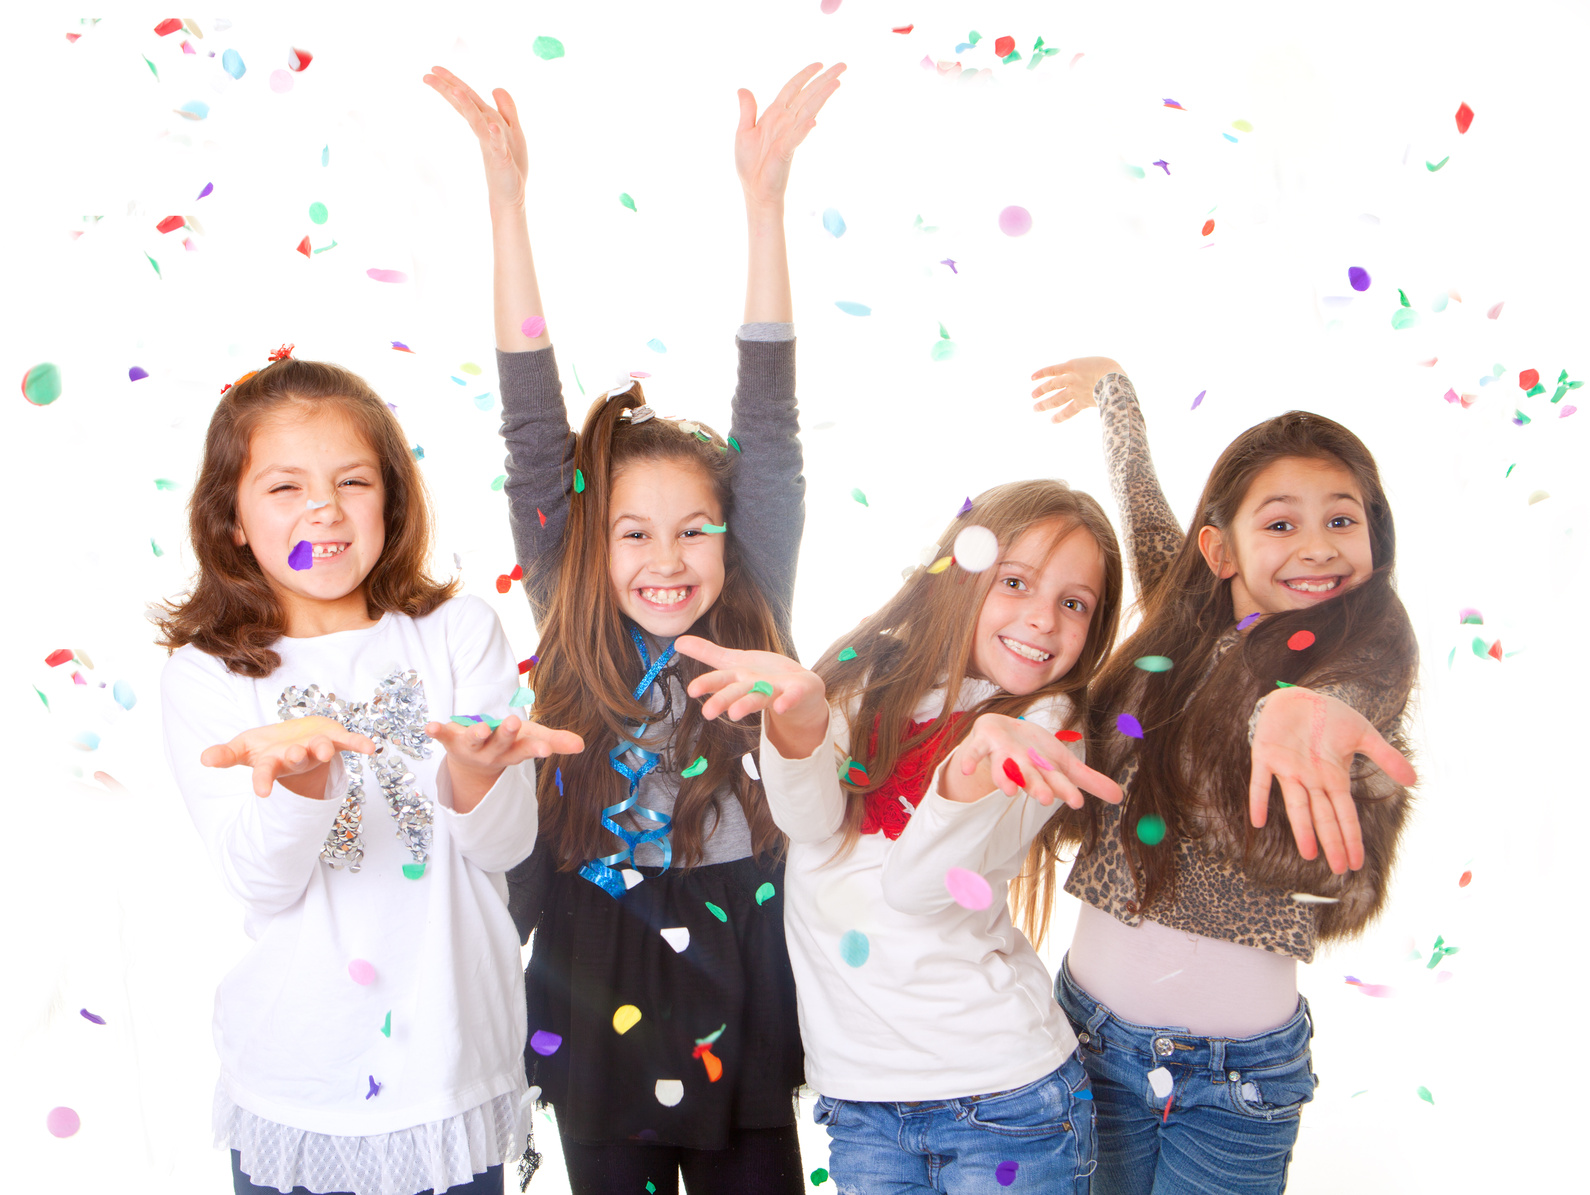 Superstar Parties provides Sydney's most exciting kids parties and children's entertainment.